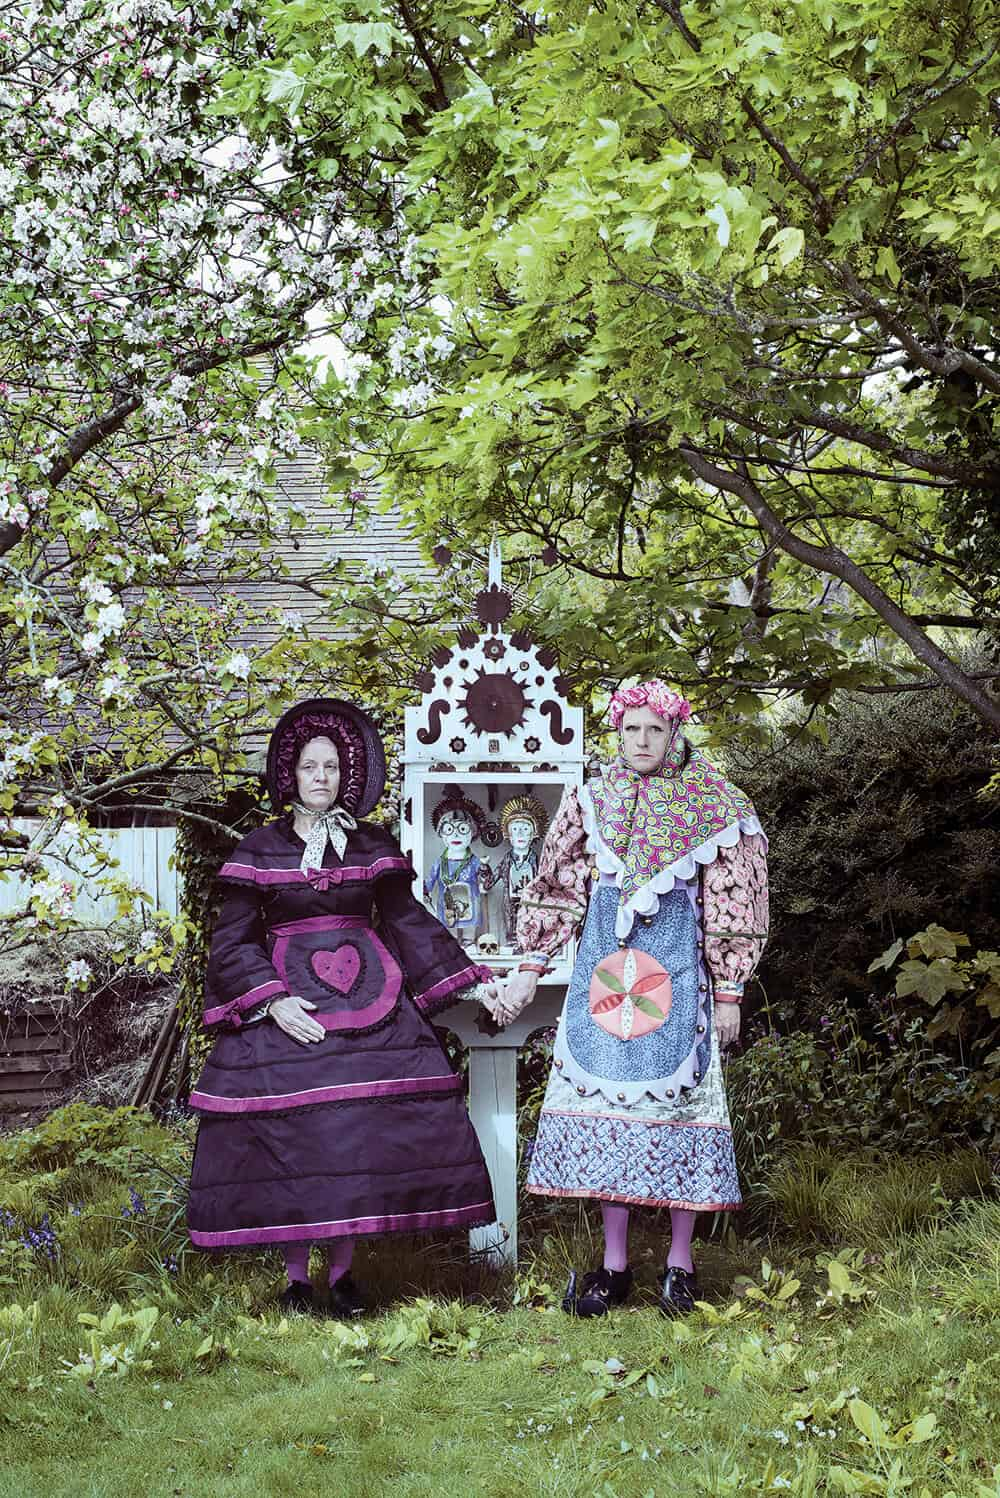 Grayson Perry, Couple visiting Marriage Shrine, 2017. C-type print, 75 x 50 cm. © Grayson Perry. Image courtesy of the artist and Victoria Miro, London.